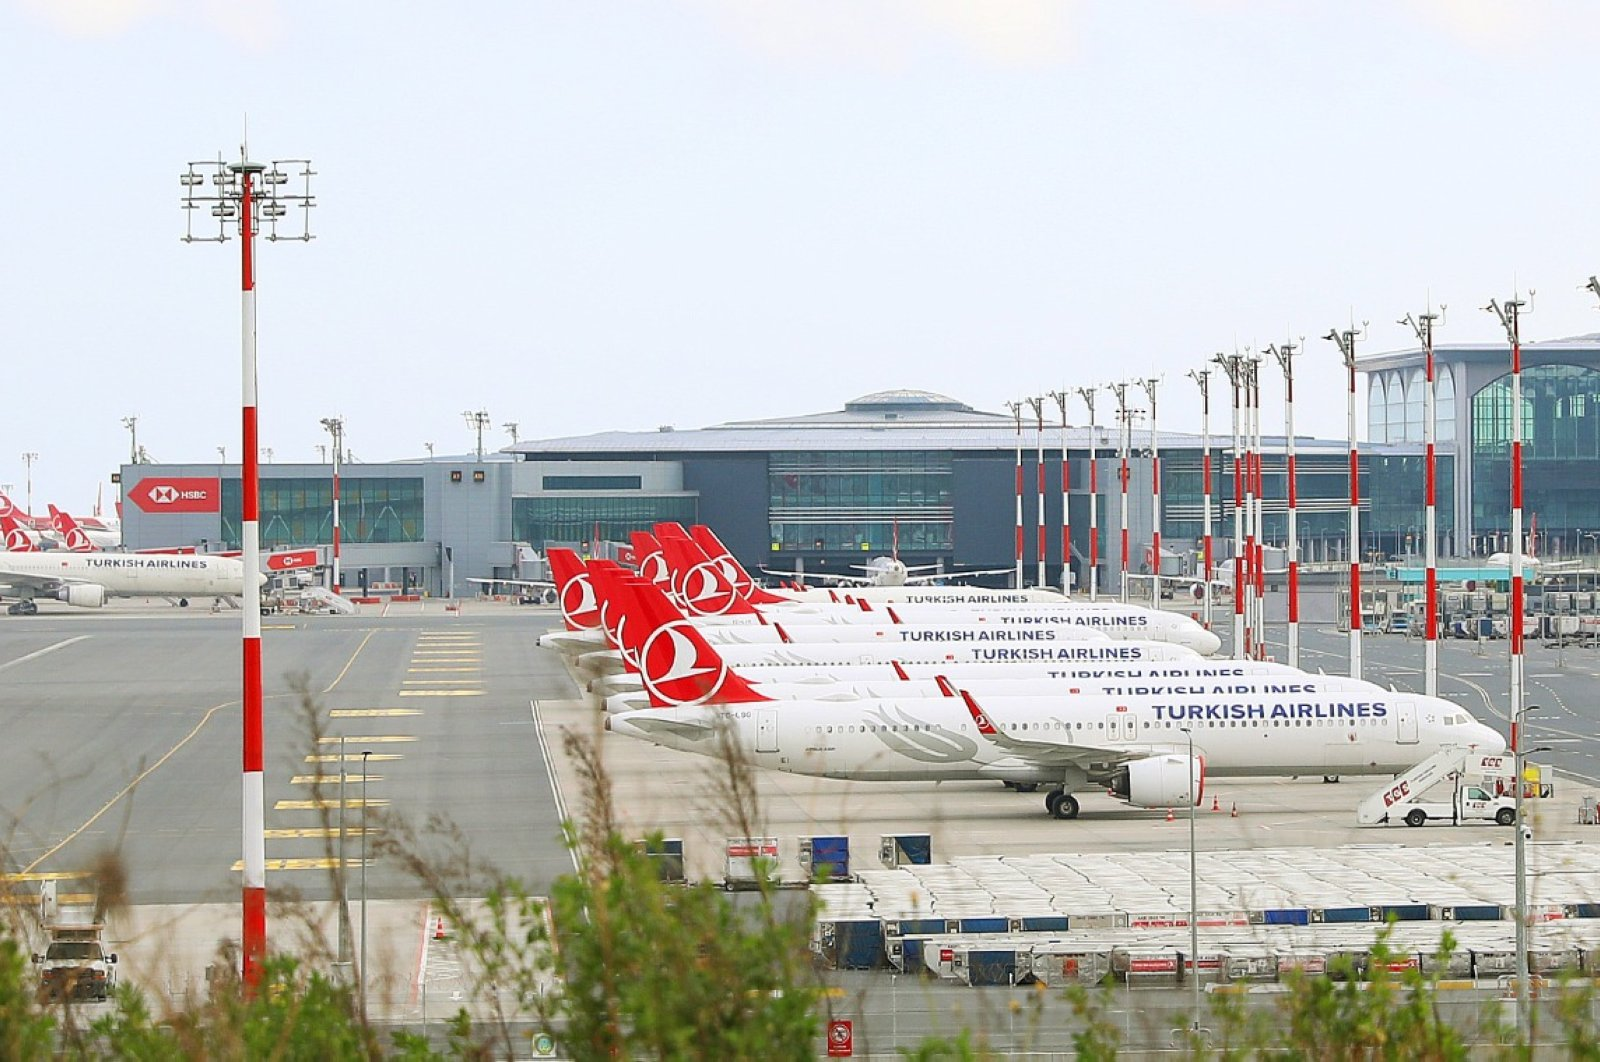 Turkish Airline planes sit on the tarmac at Istanbul Airport during the coronavirus outbreak, Istanbul, May 24, 2020. (AA Photo)